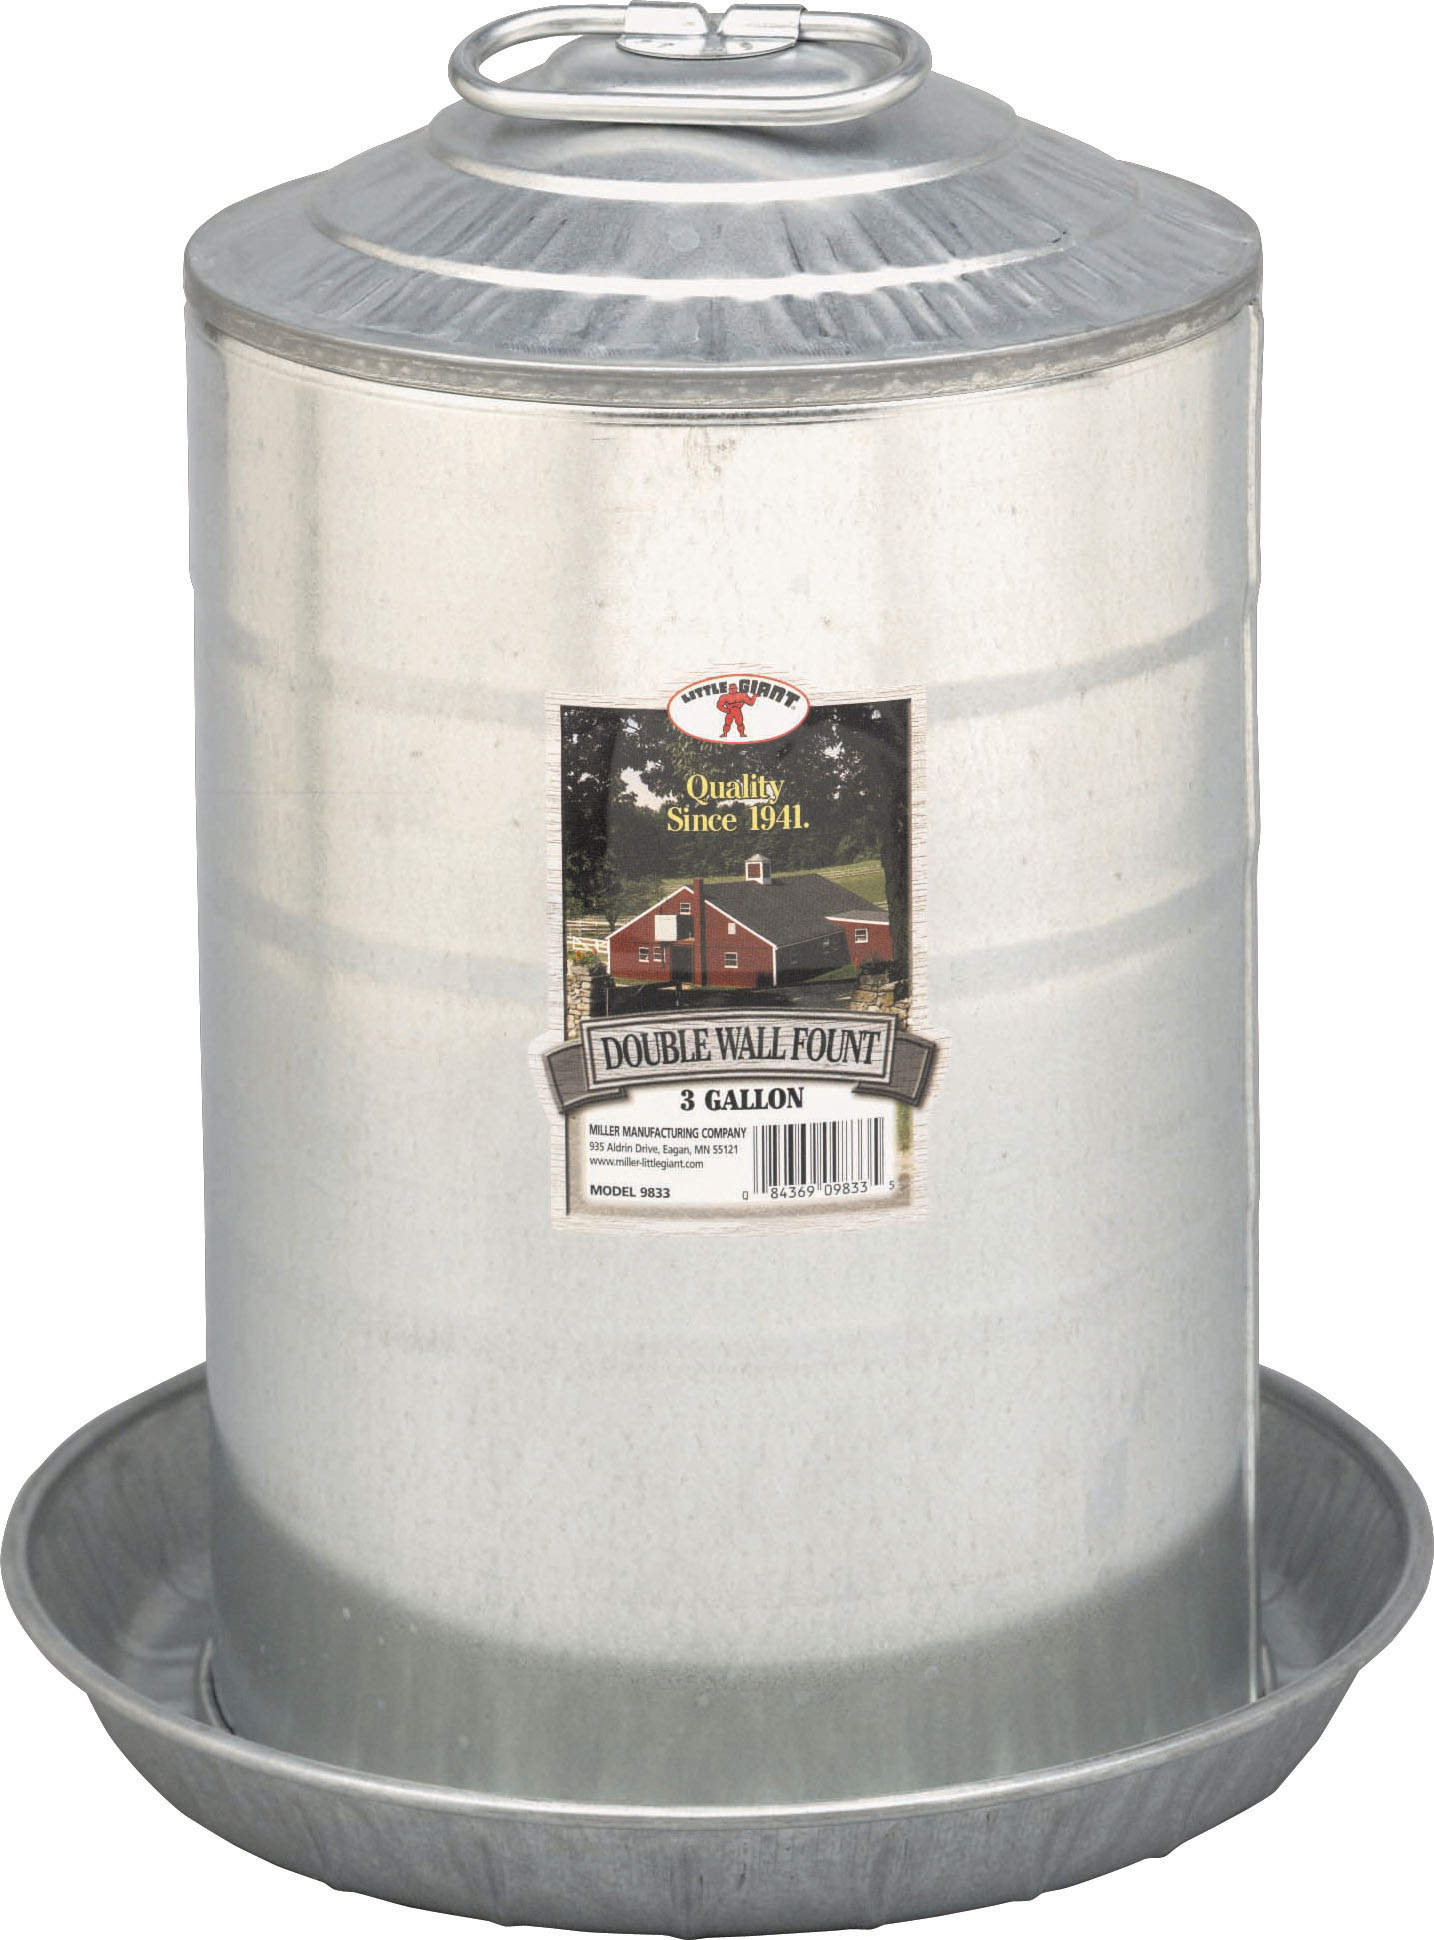 Miller Little Giant Metal Double Wall Poultry Fountain, 3-gallon